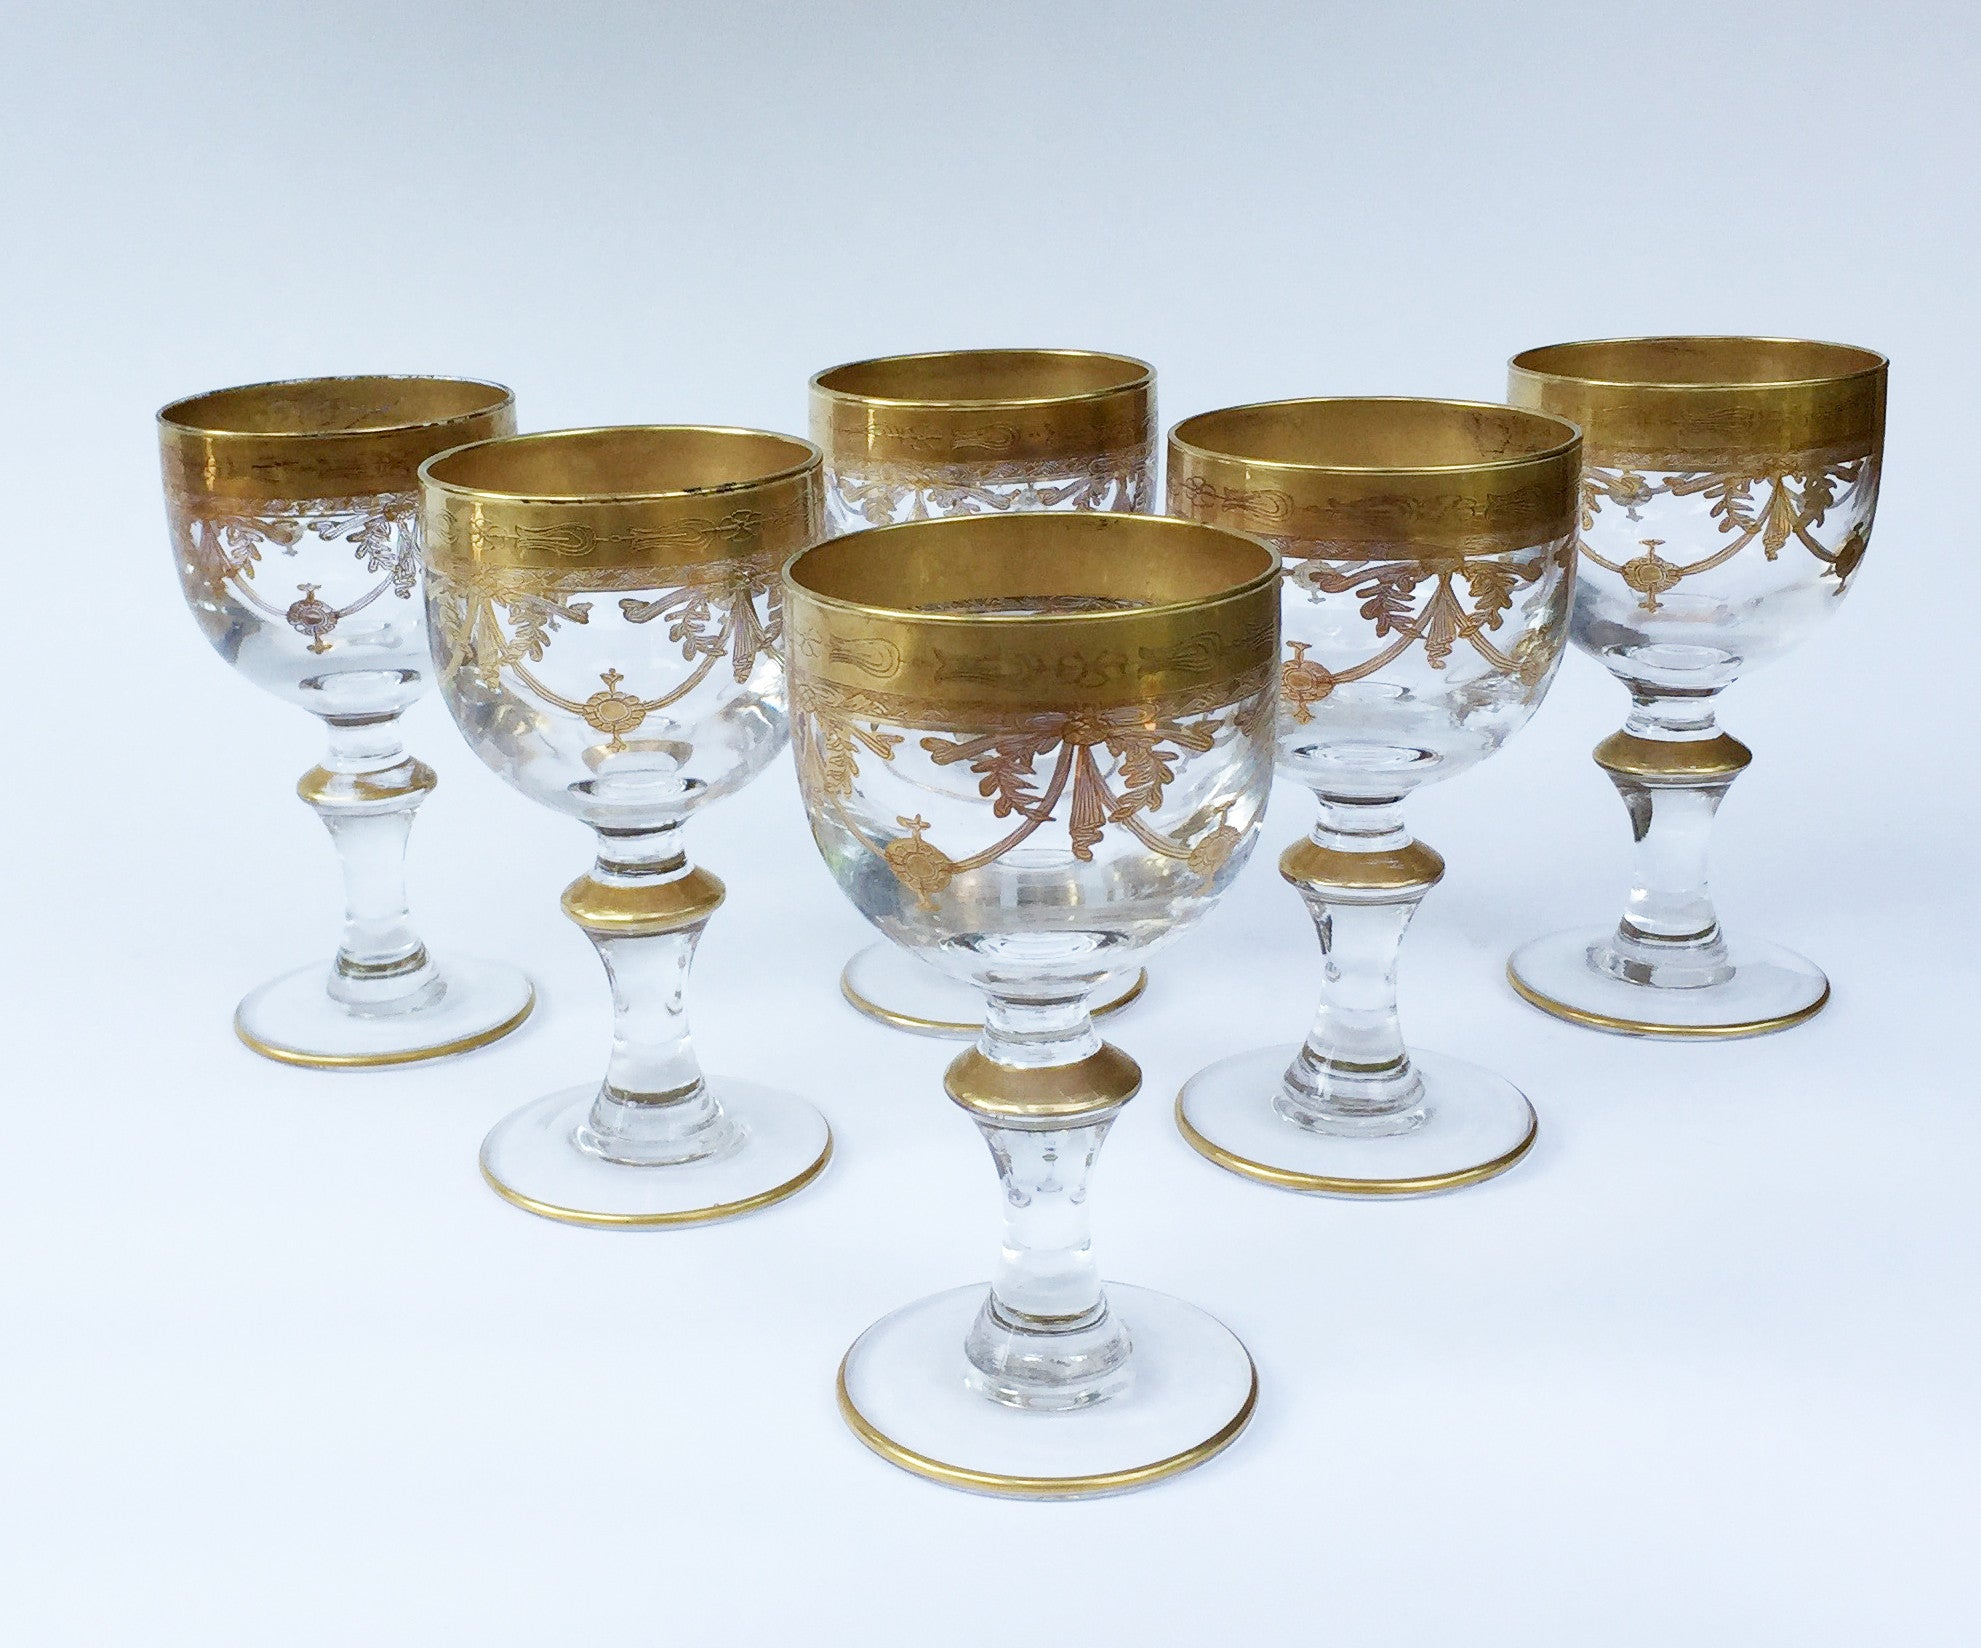 Antique French Lead-Crystal Red Wine Glasses, Enamelled Gilt Decoration, circa 1920